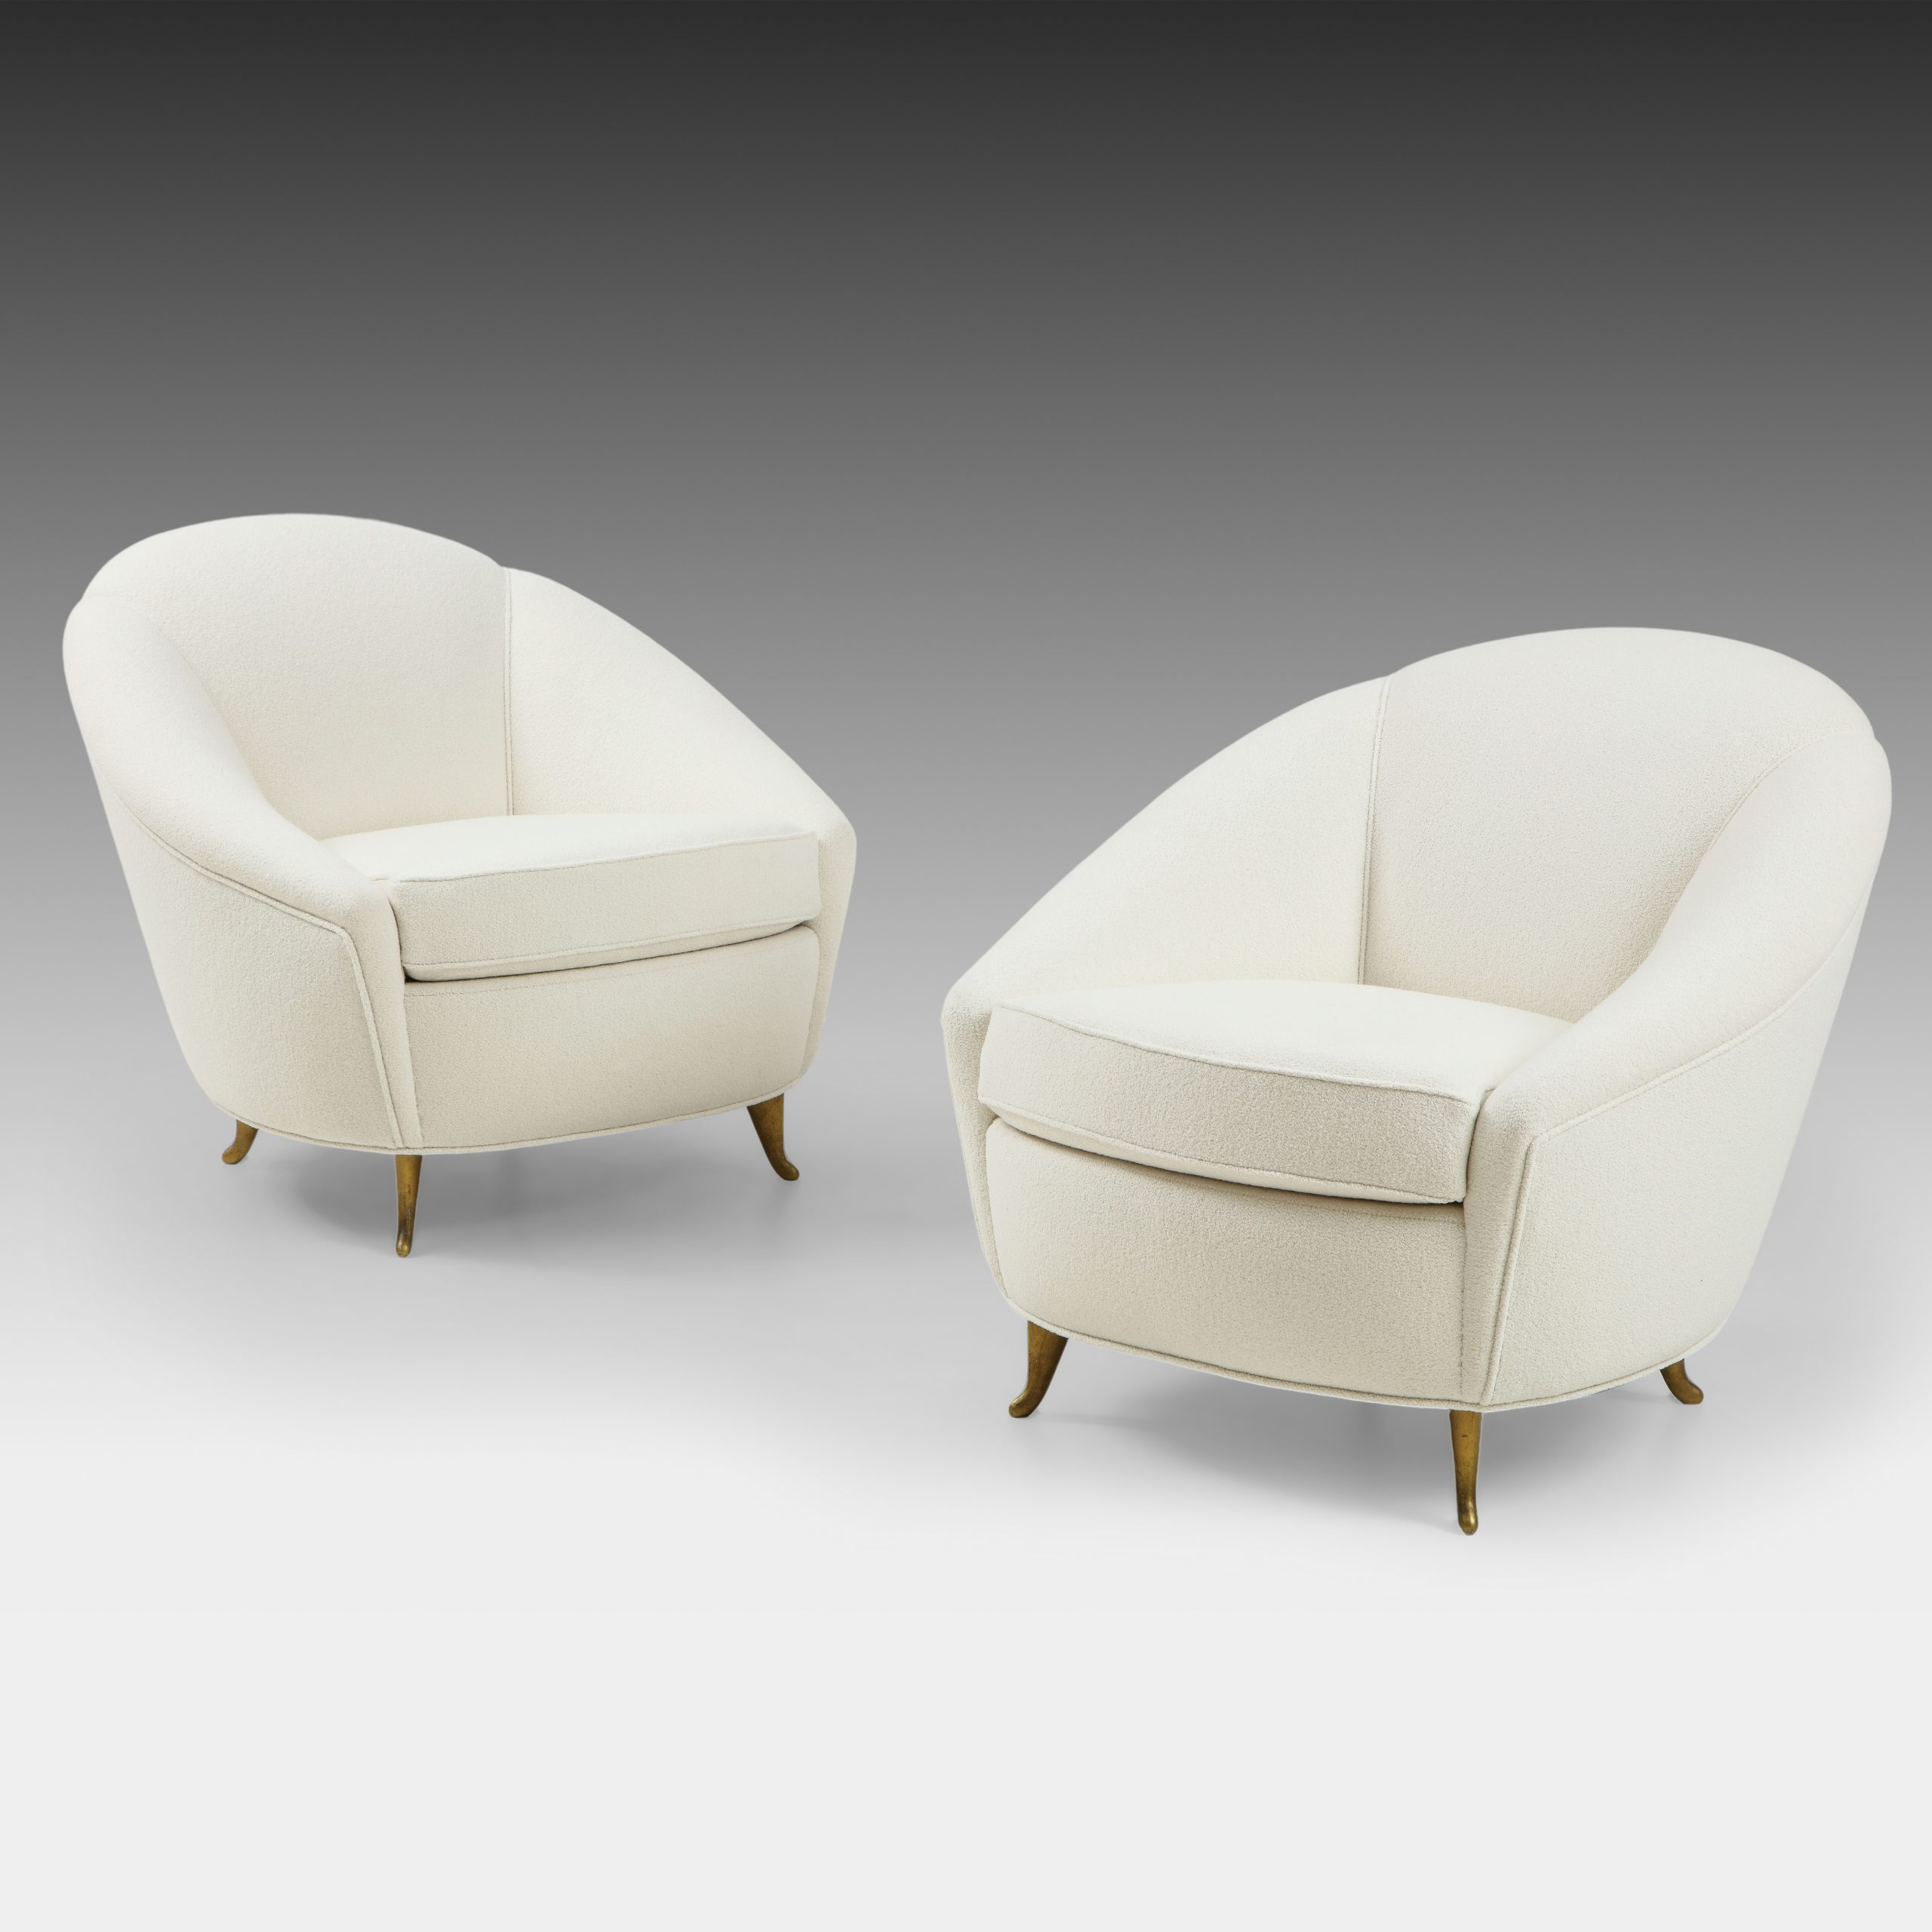 Pair of Bouclé Armchairs by Gio Ponti for ISA Bergamo | soyun k.